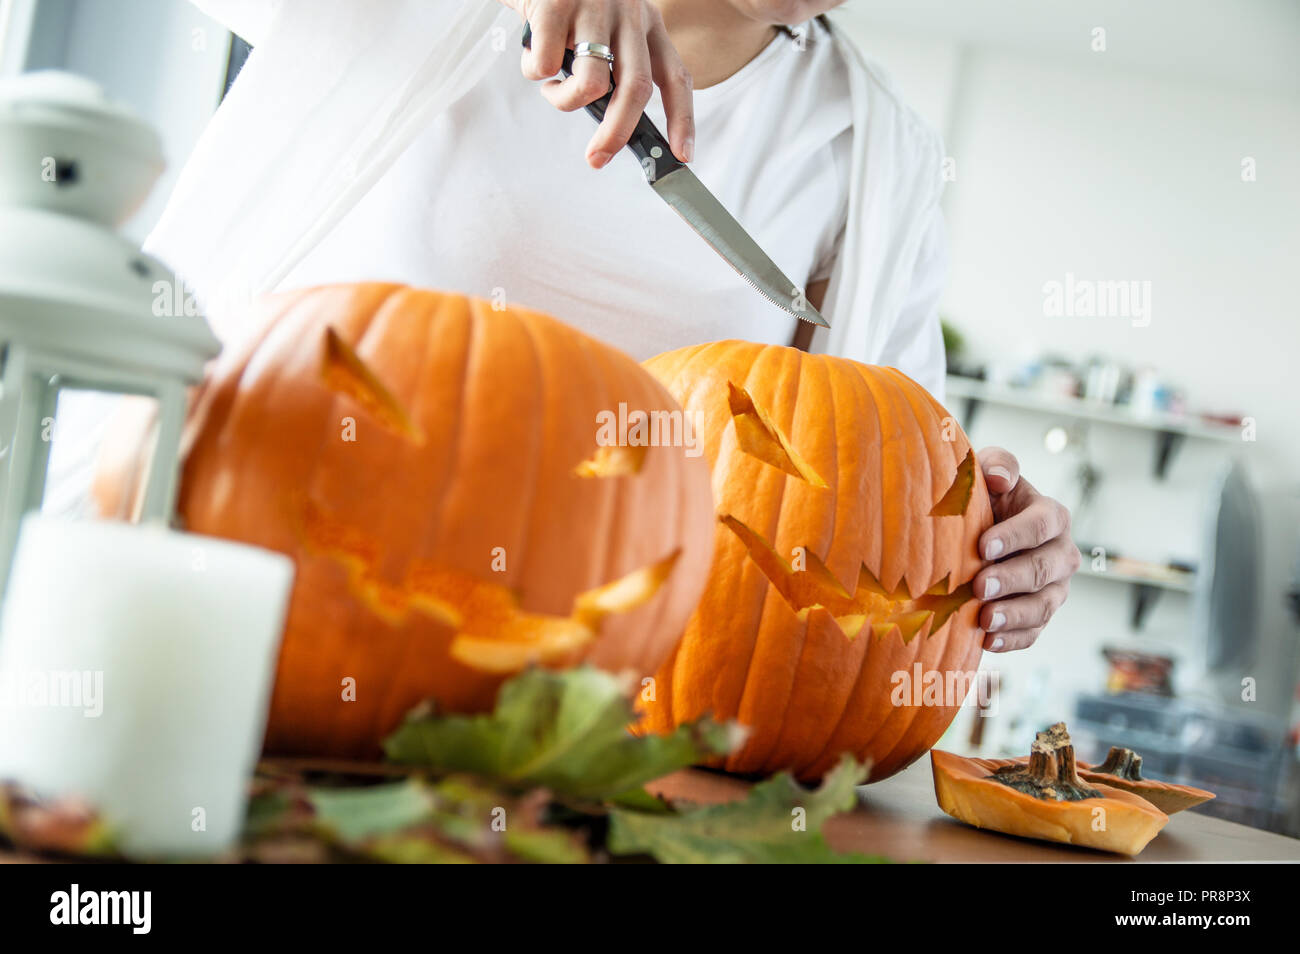 Woman's hand with knife cuts pumpkin for Halloween. Horizontal orientation - Stock Image